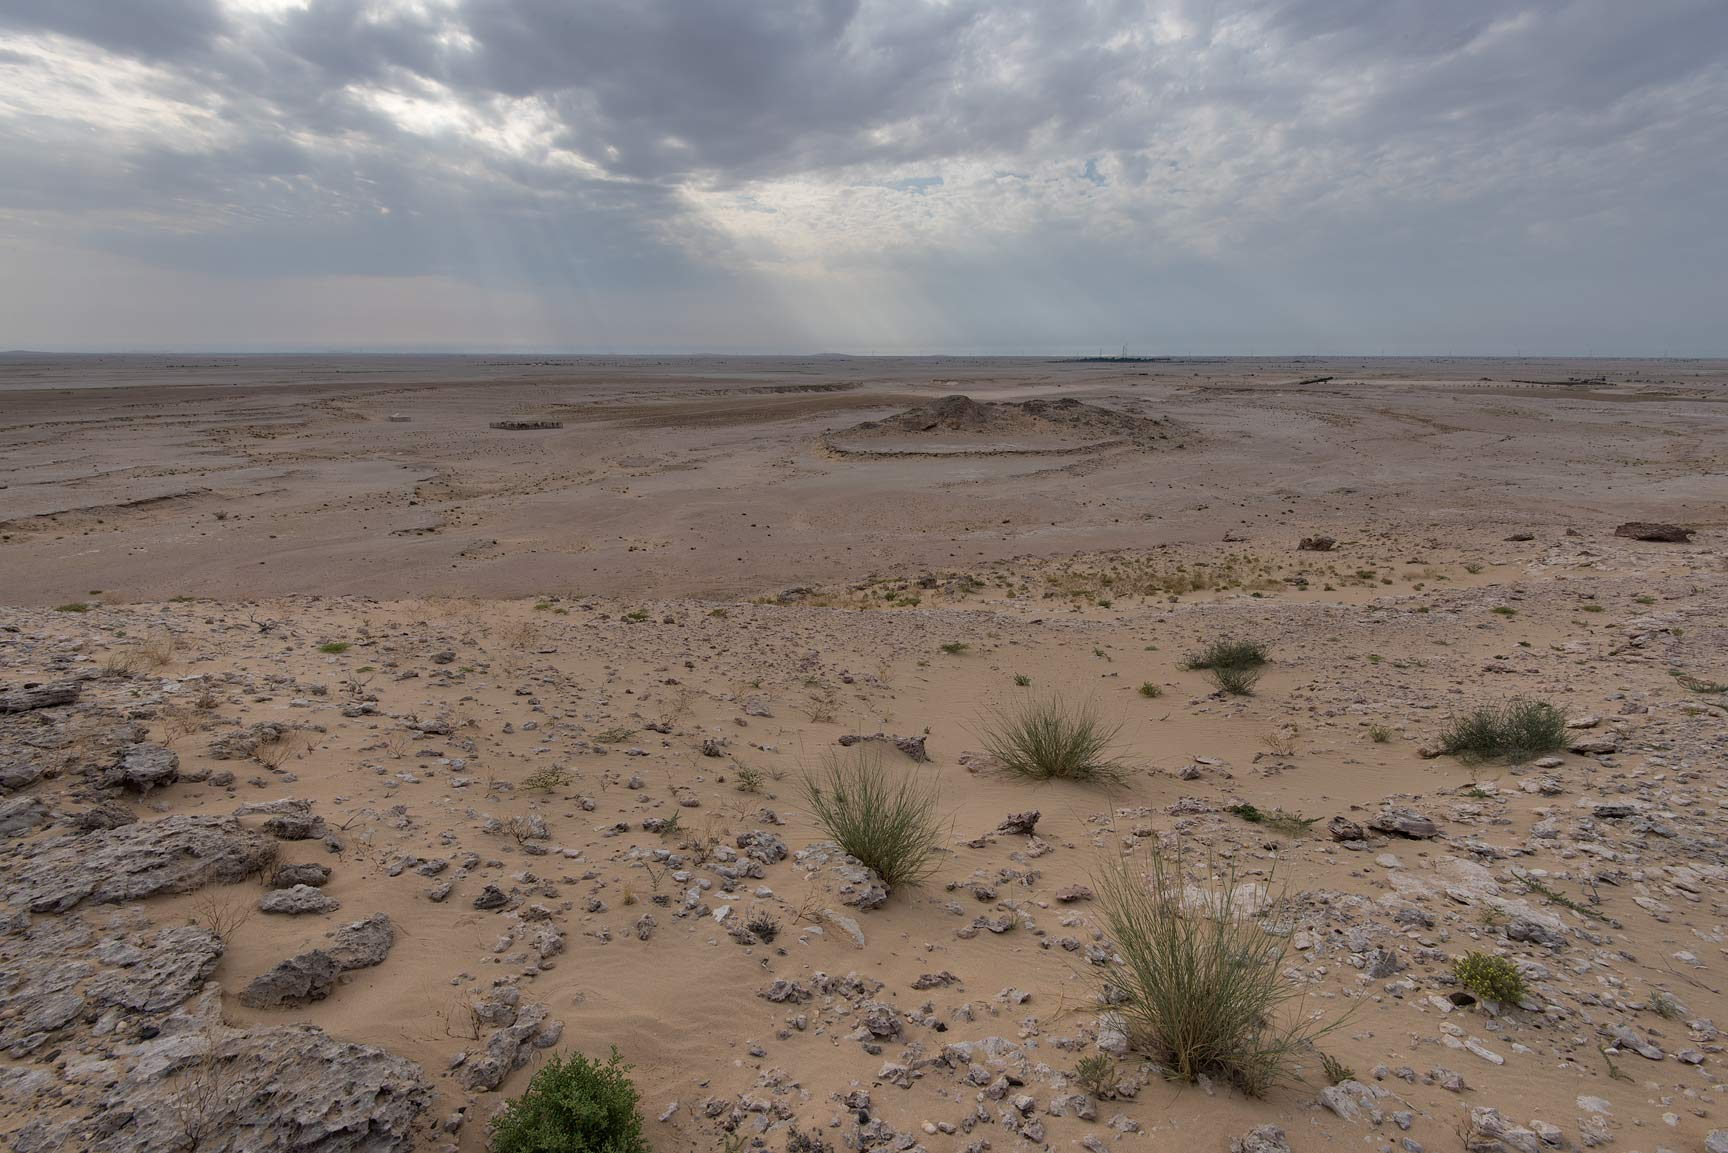 View from limestone cliffs in Harrarah (Al Kharrarah). Southern Qatar